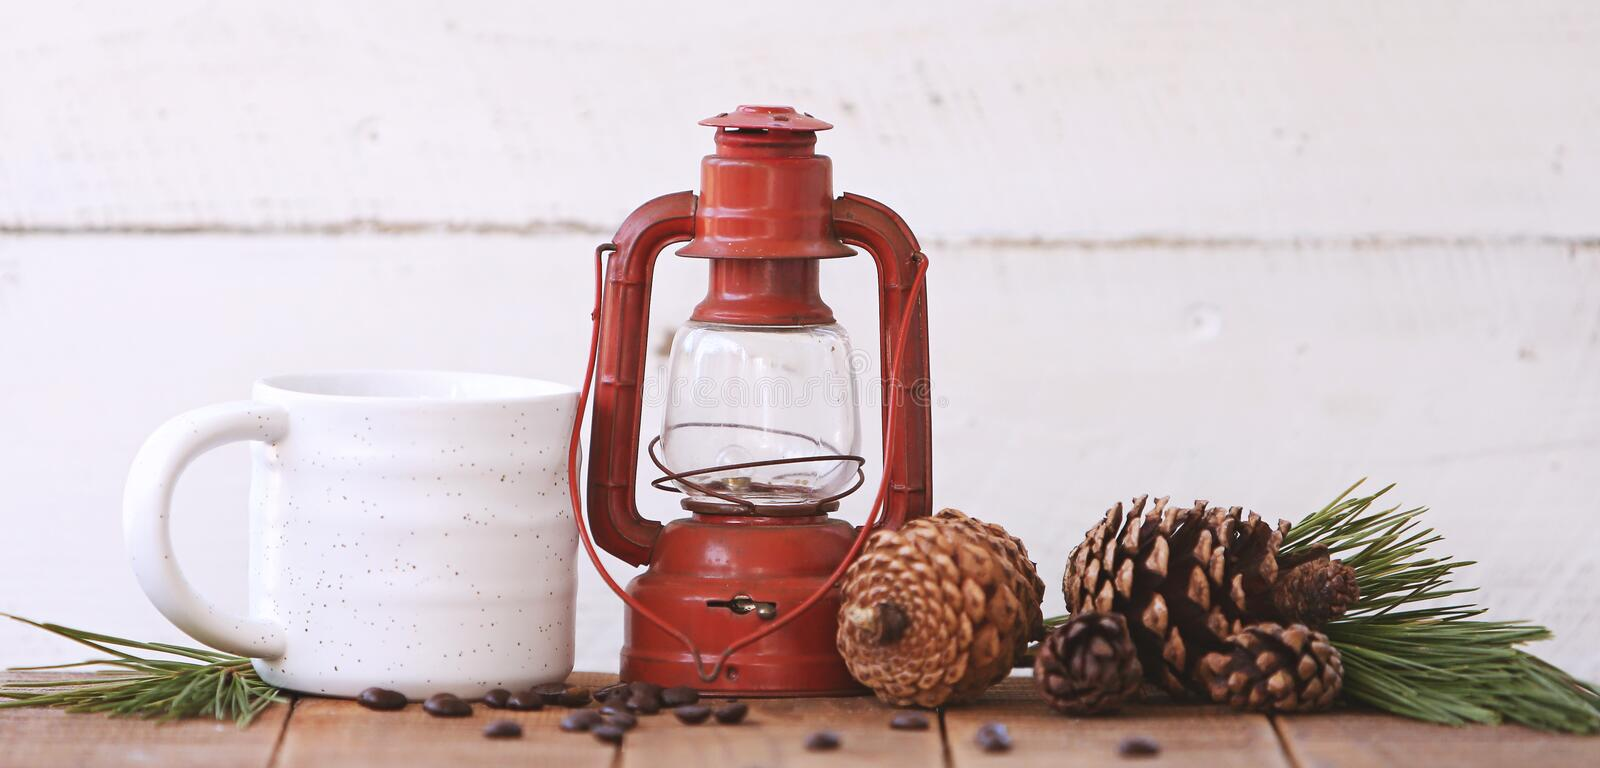 Red Kerosene Lantern Beside White Ceramic Mug on Brown Wooden Table royalty free stock photo